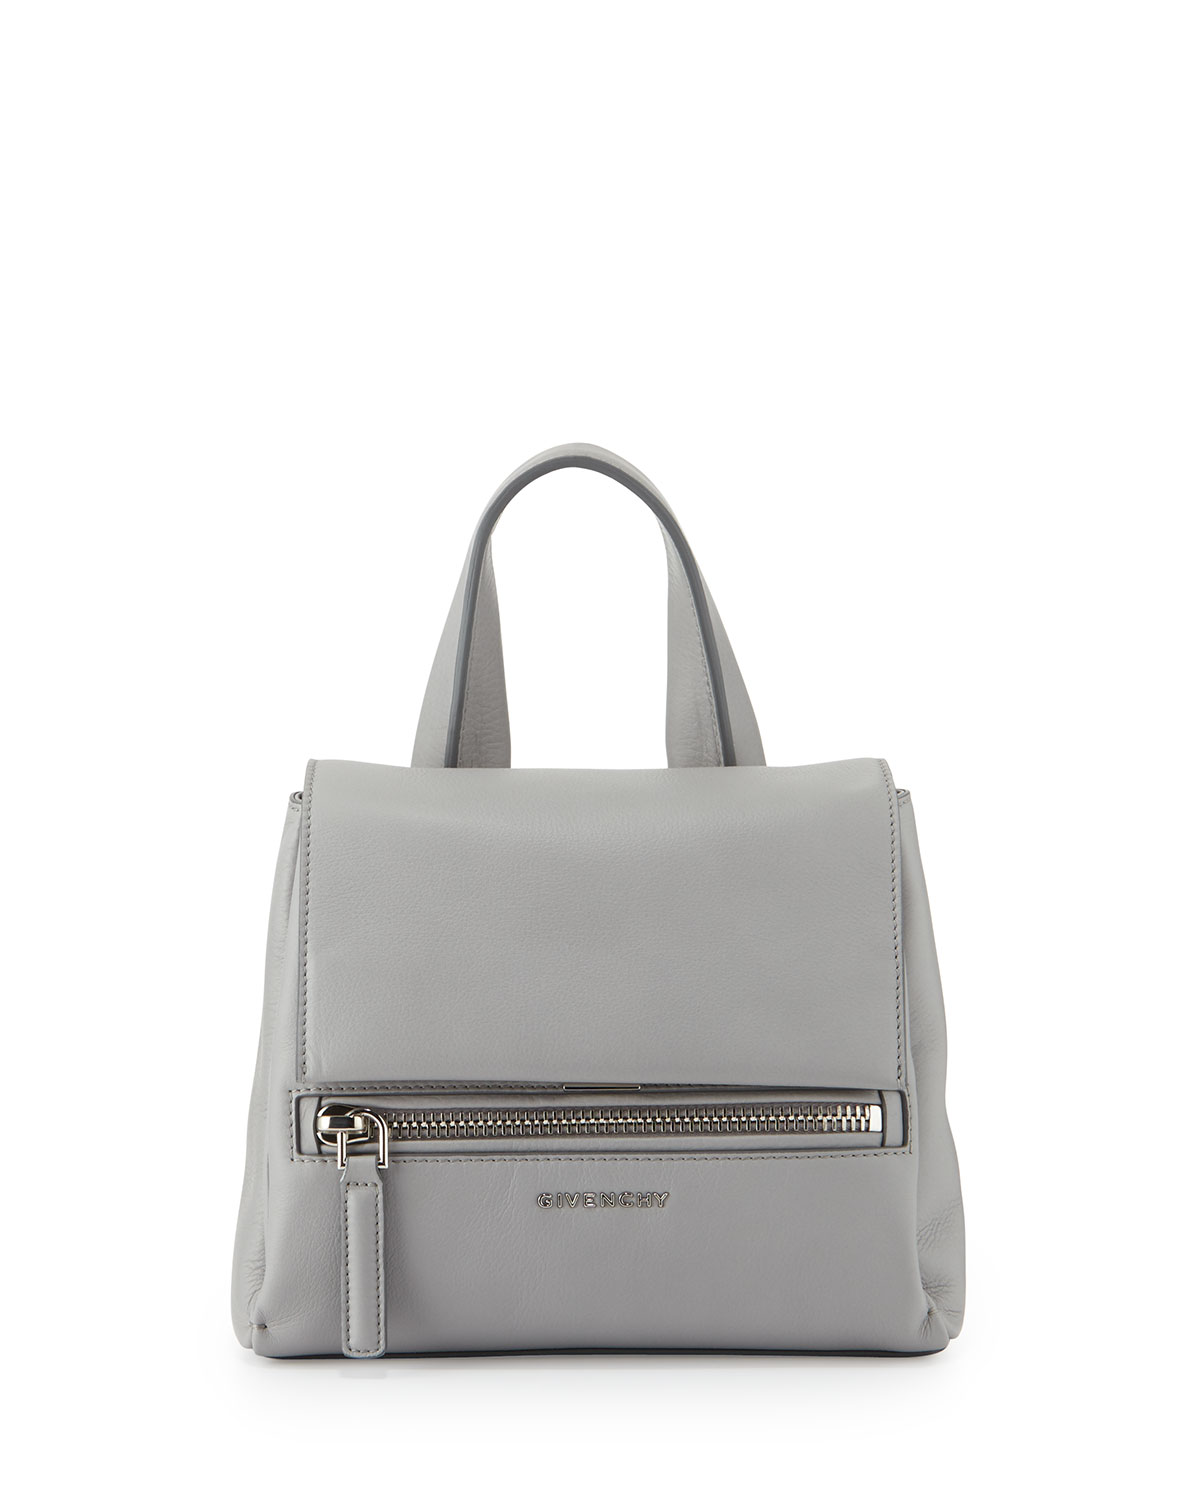 8052472acab Givenchy Pandora Pure Mini Leather Satchel Bag, Gray | Neiman Marcus